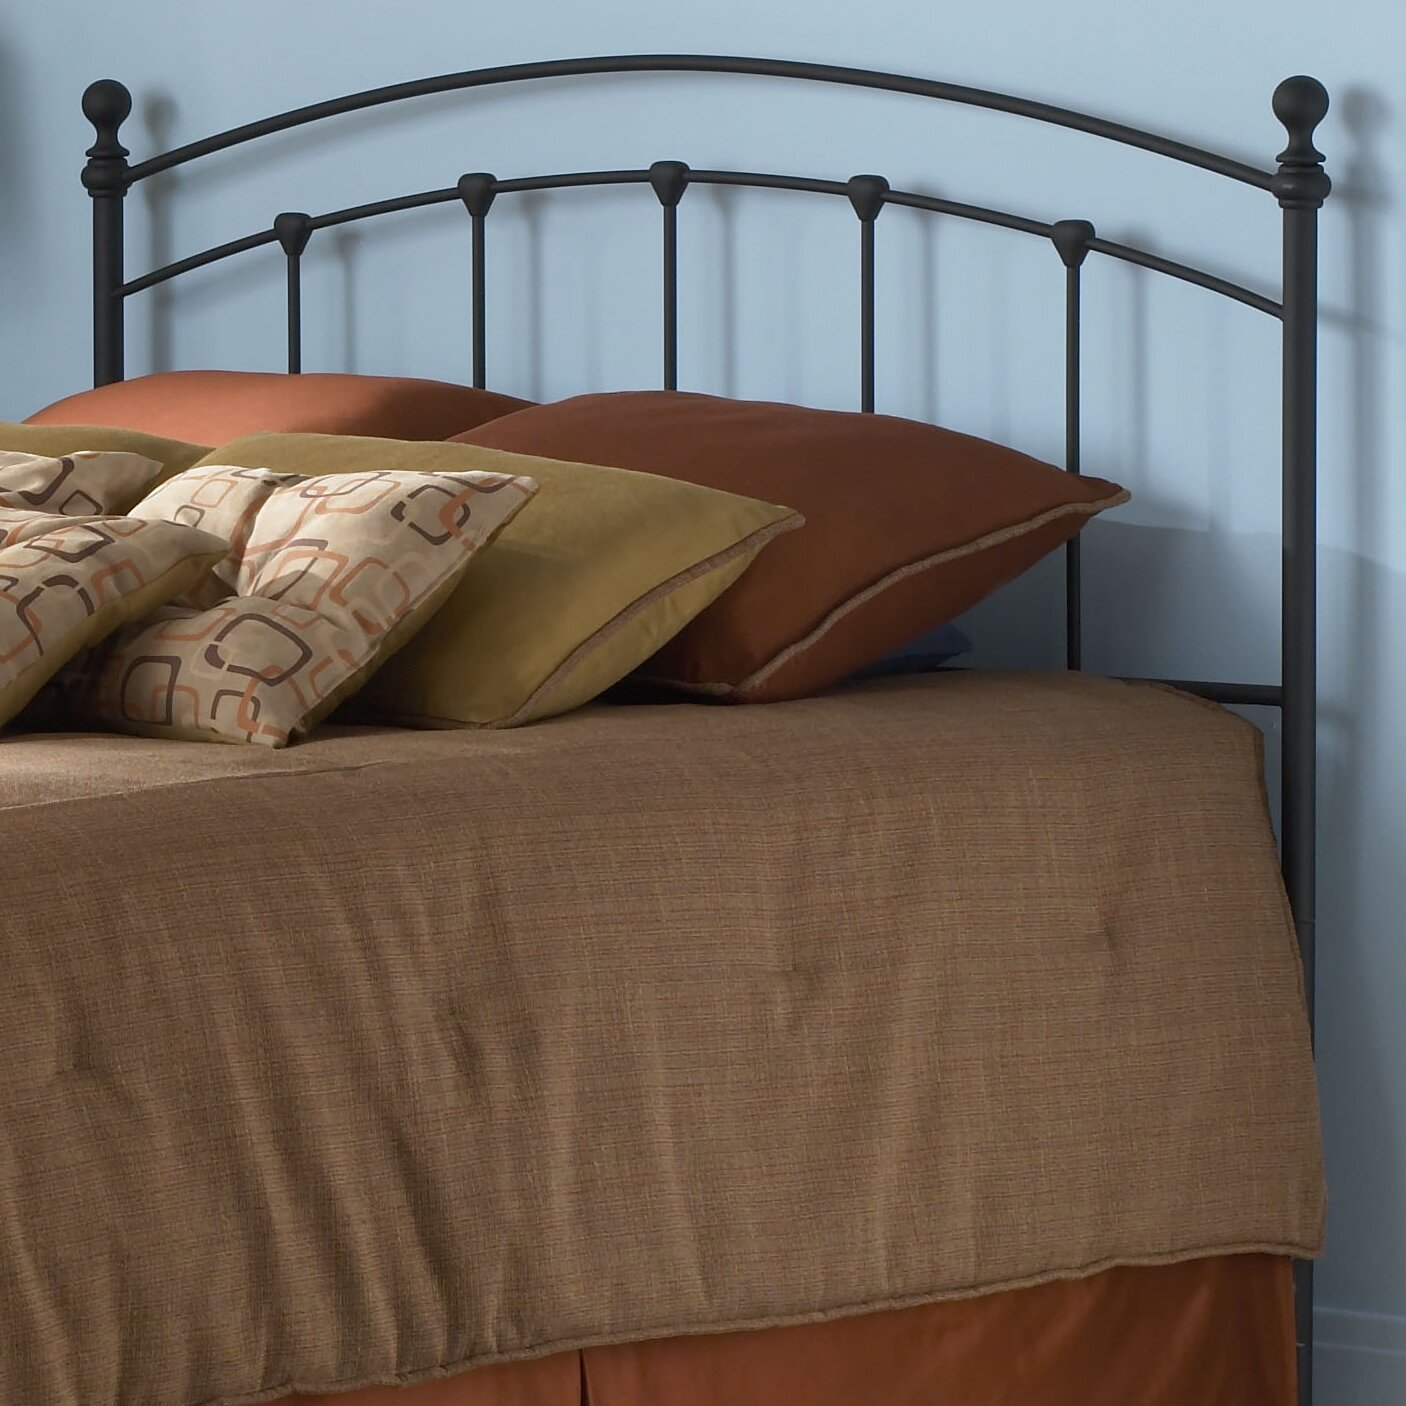 Warefair Com: Fashion Bed Group Sanford Metal Headboard & Reviews